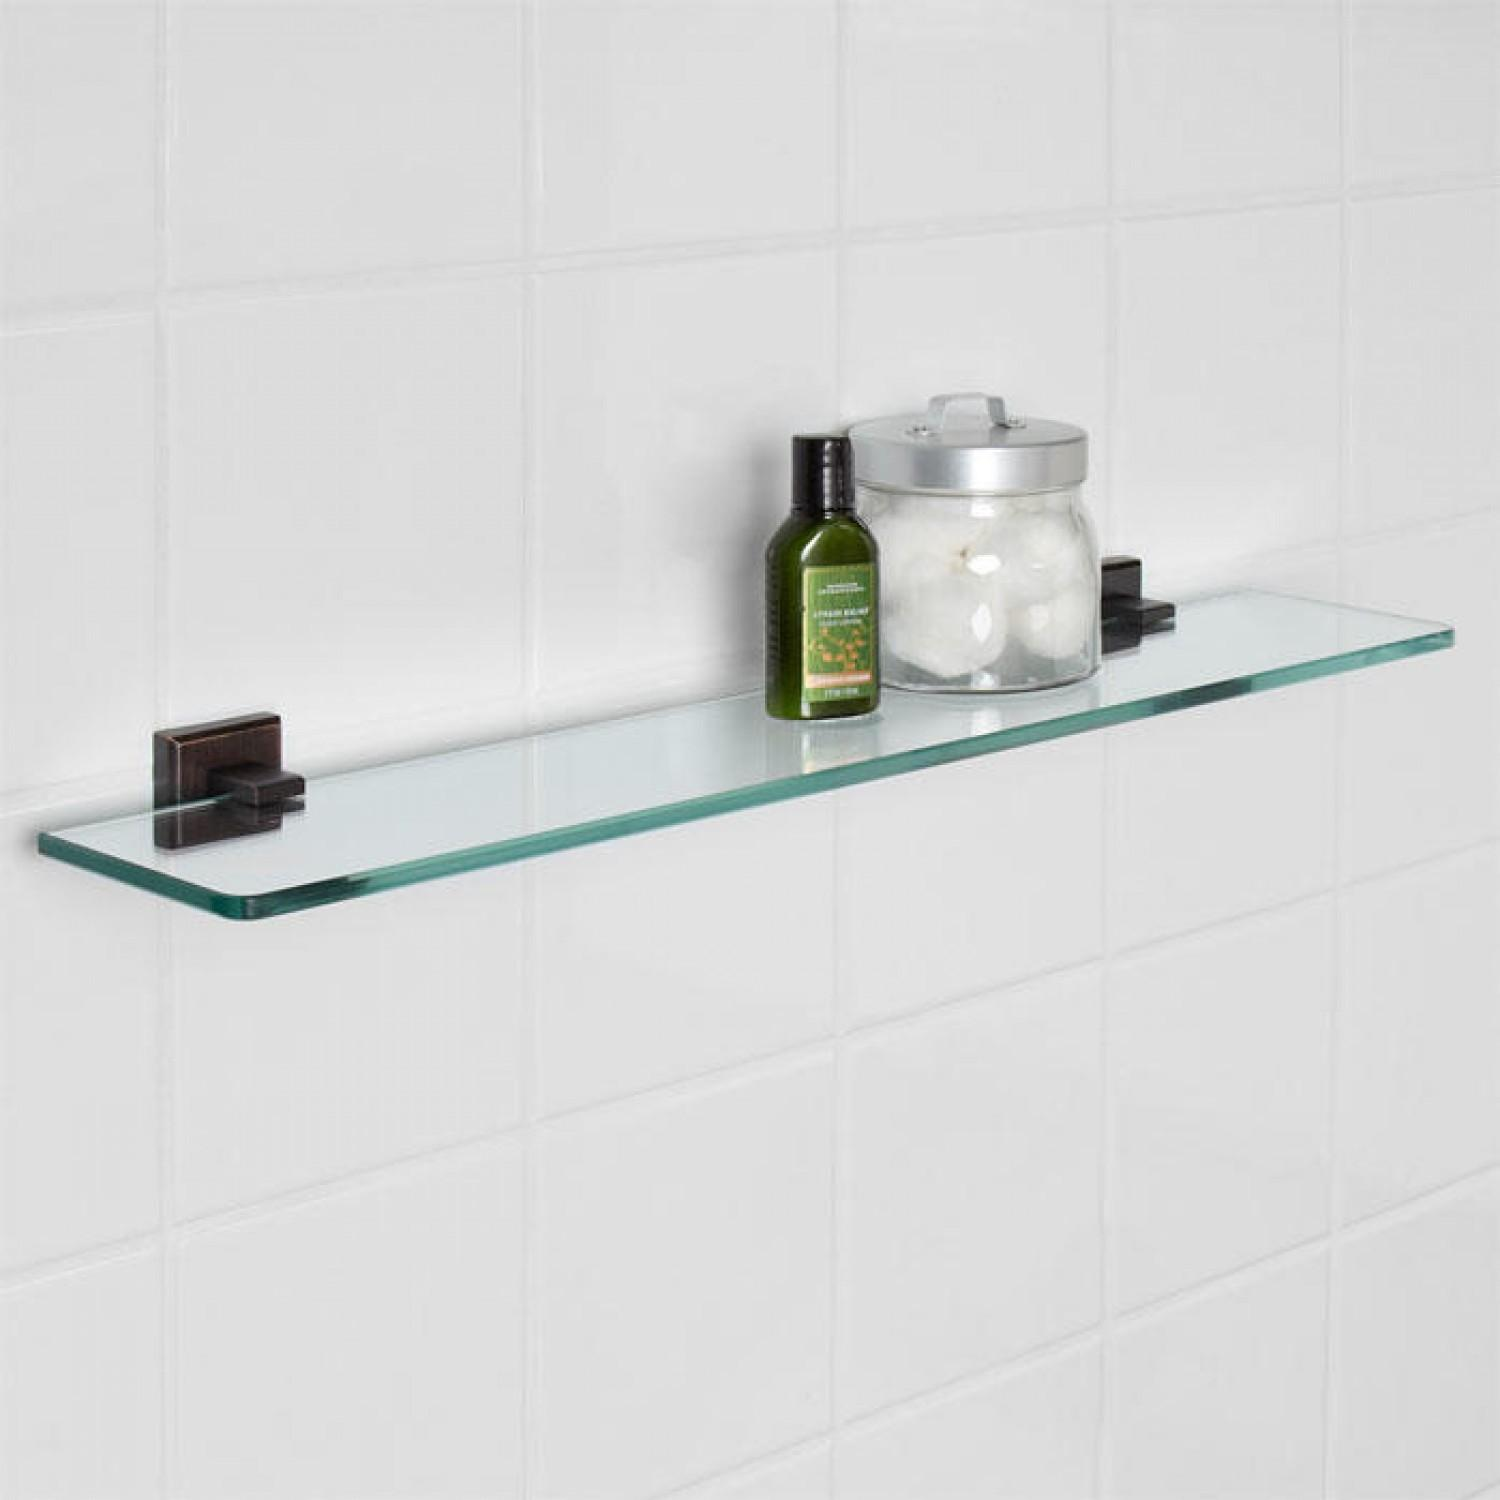 Haskell Tempered Glass Shelf Bathroom